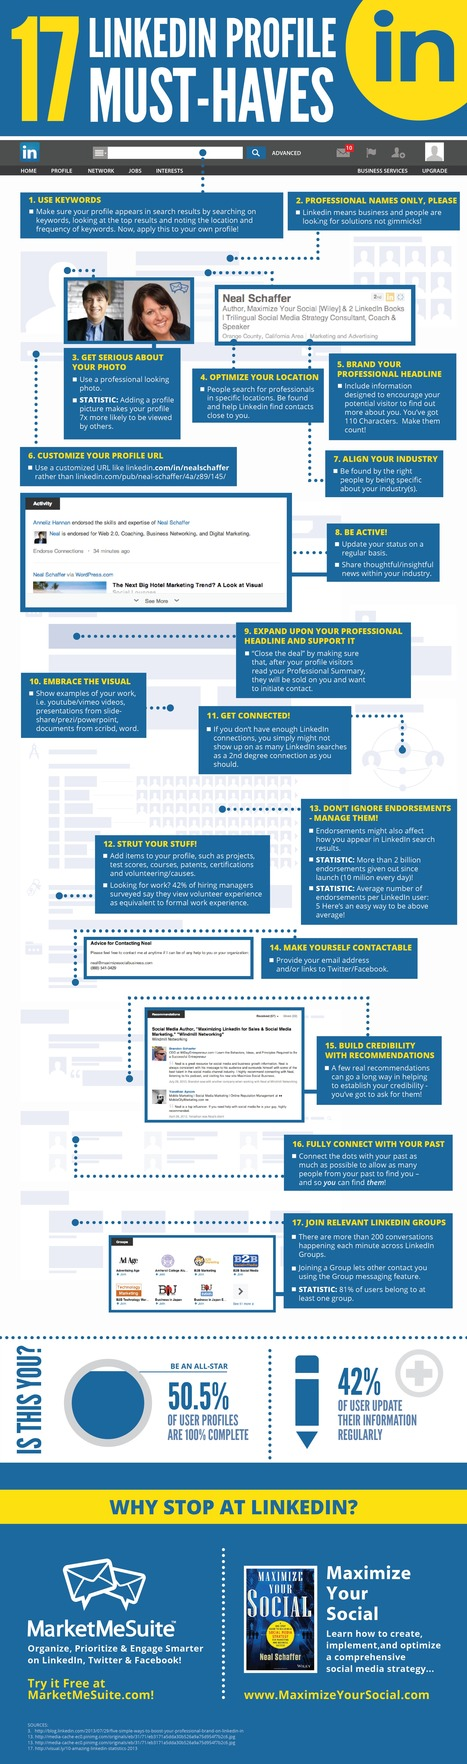 Ace LinkedIn With These 17 Profile Must-Haves [INFOGRAPHIC] | Educomunicación | Scoop.it